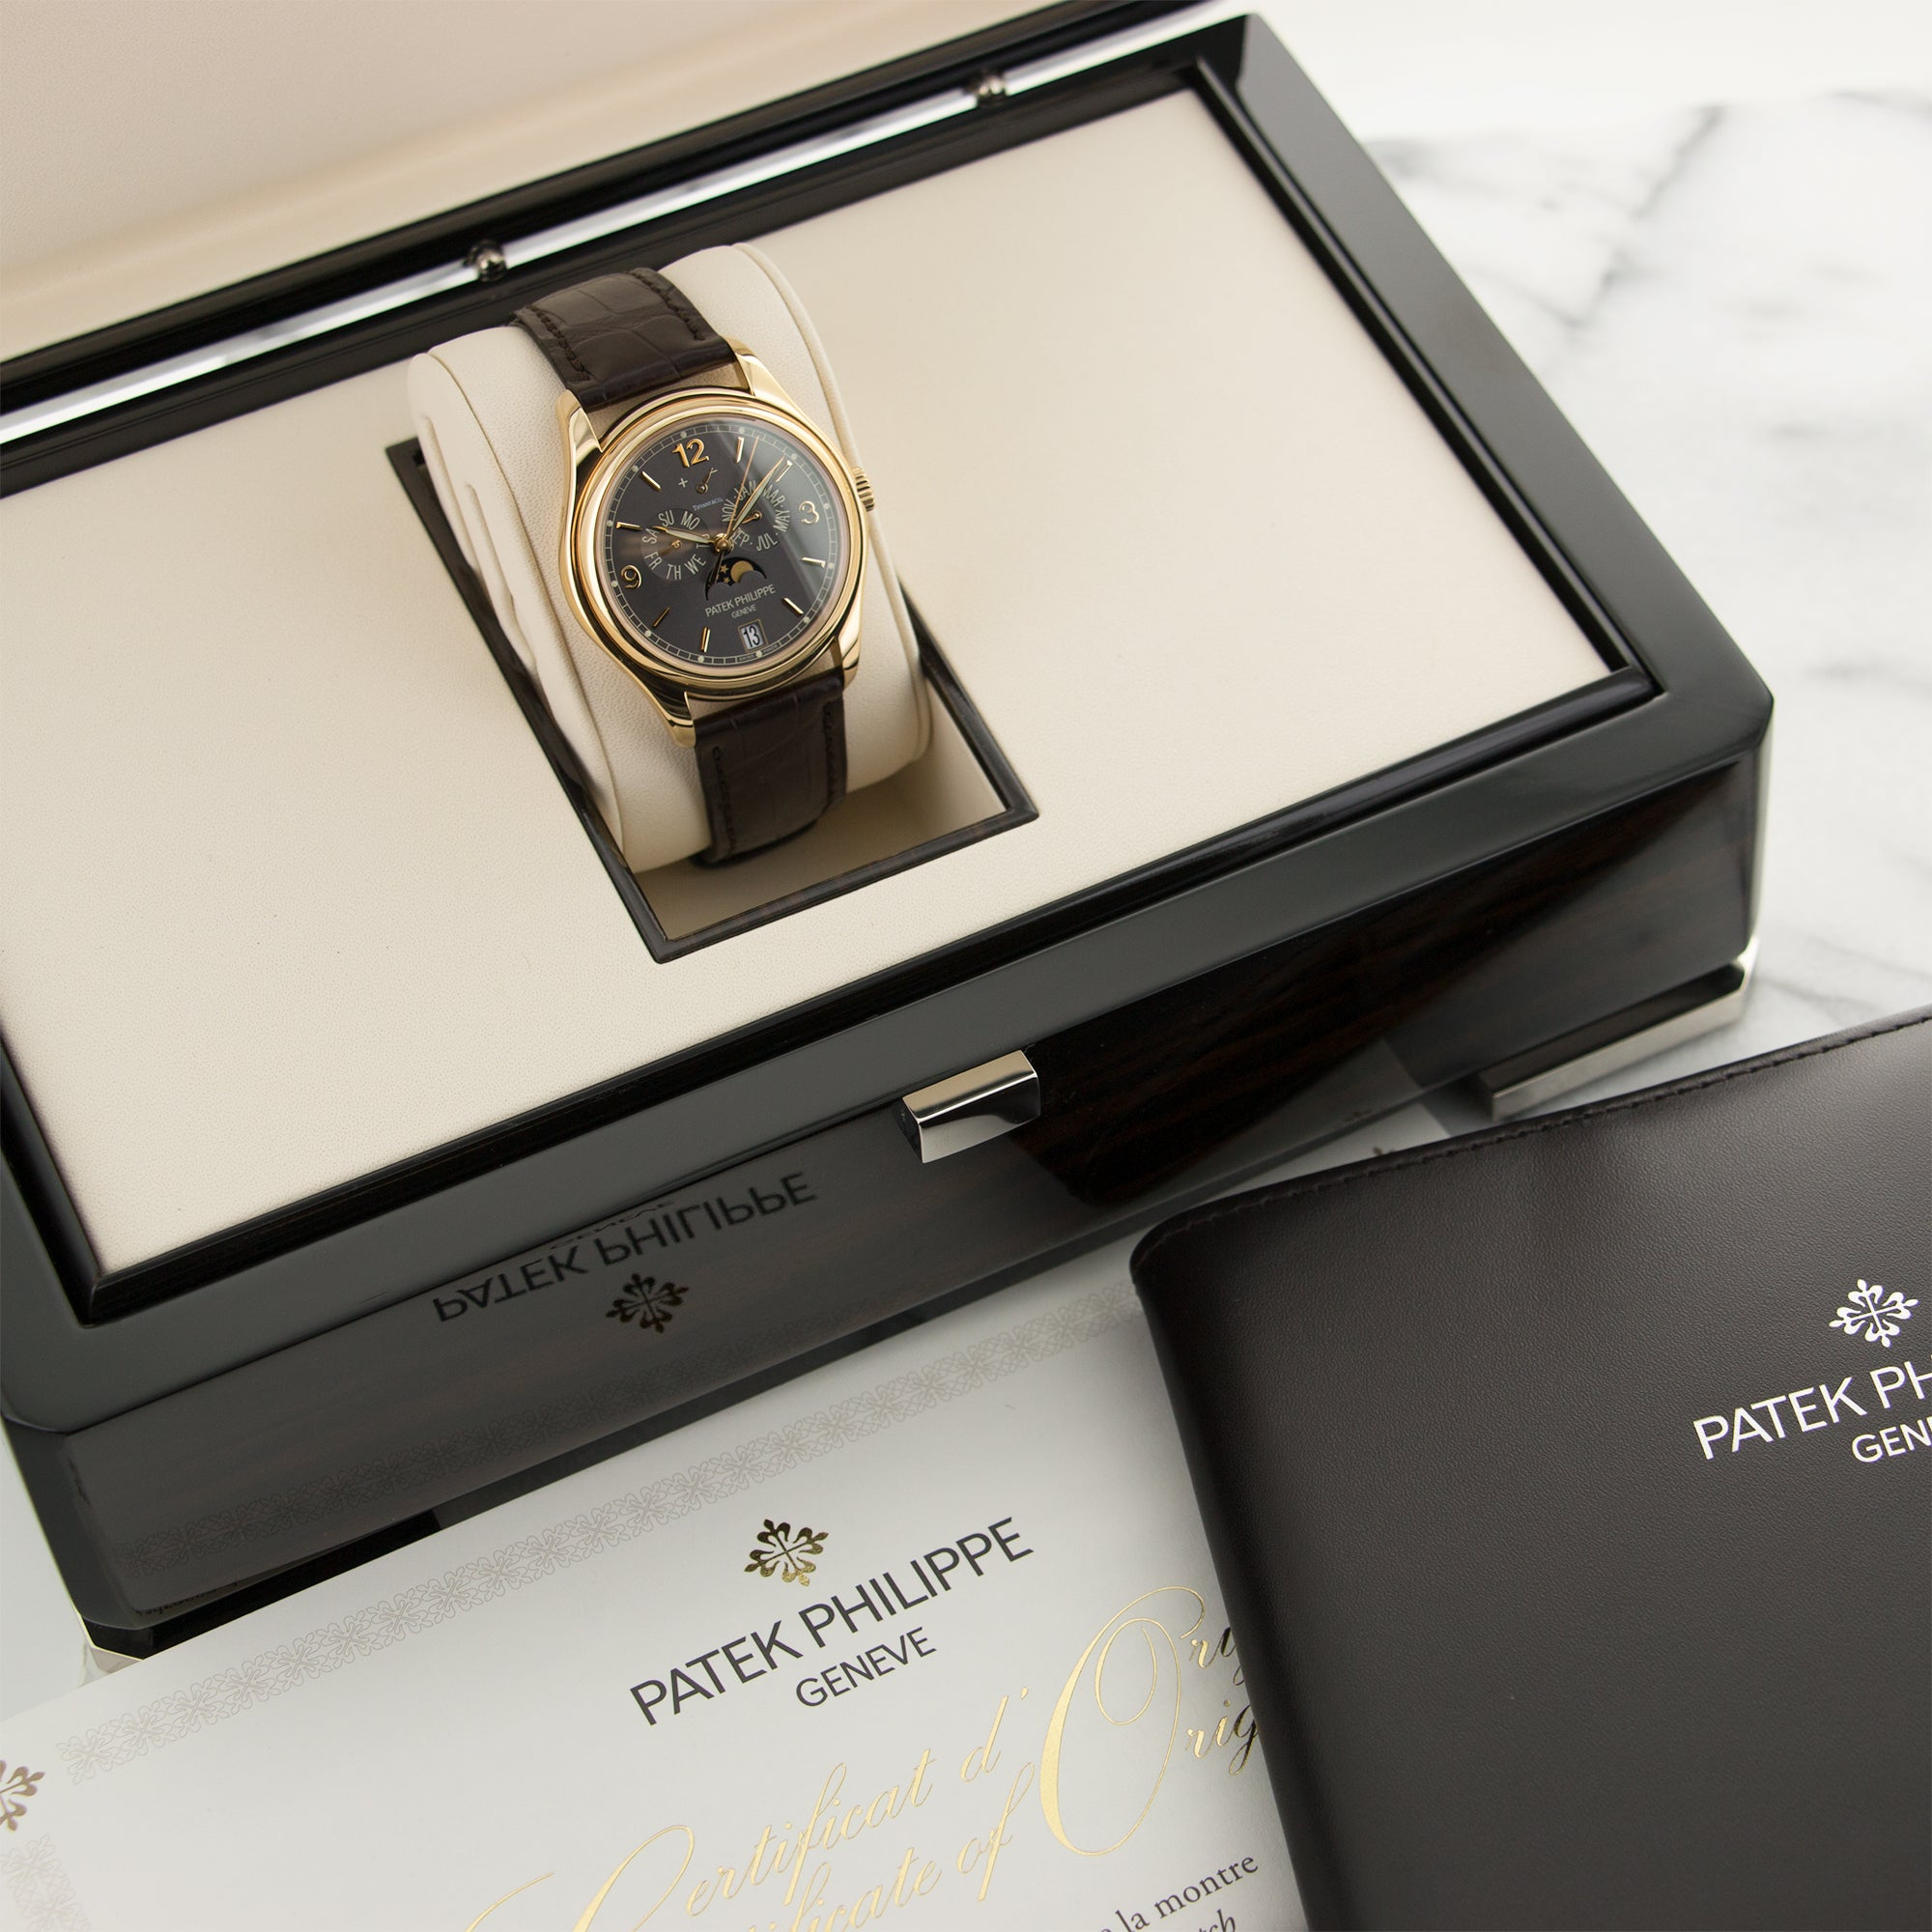 Patek Philippe Annual Calendar 5146J 18k YG  Like New, Worn a Few Times Gents 18k YG Grey with Tiffany & Co. Signature 39mm Automatic 2017 Brown Crocodile Strap Original Box and Certificate